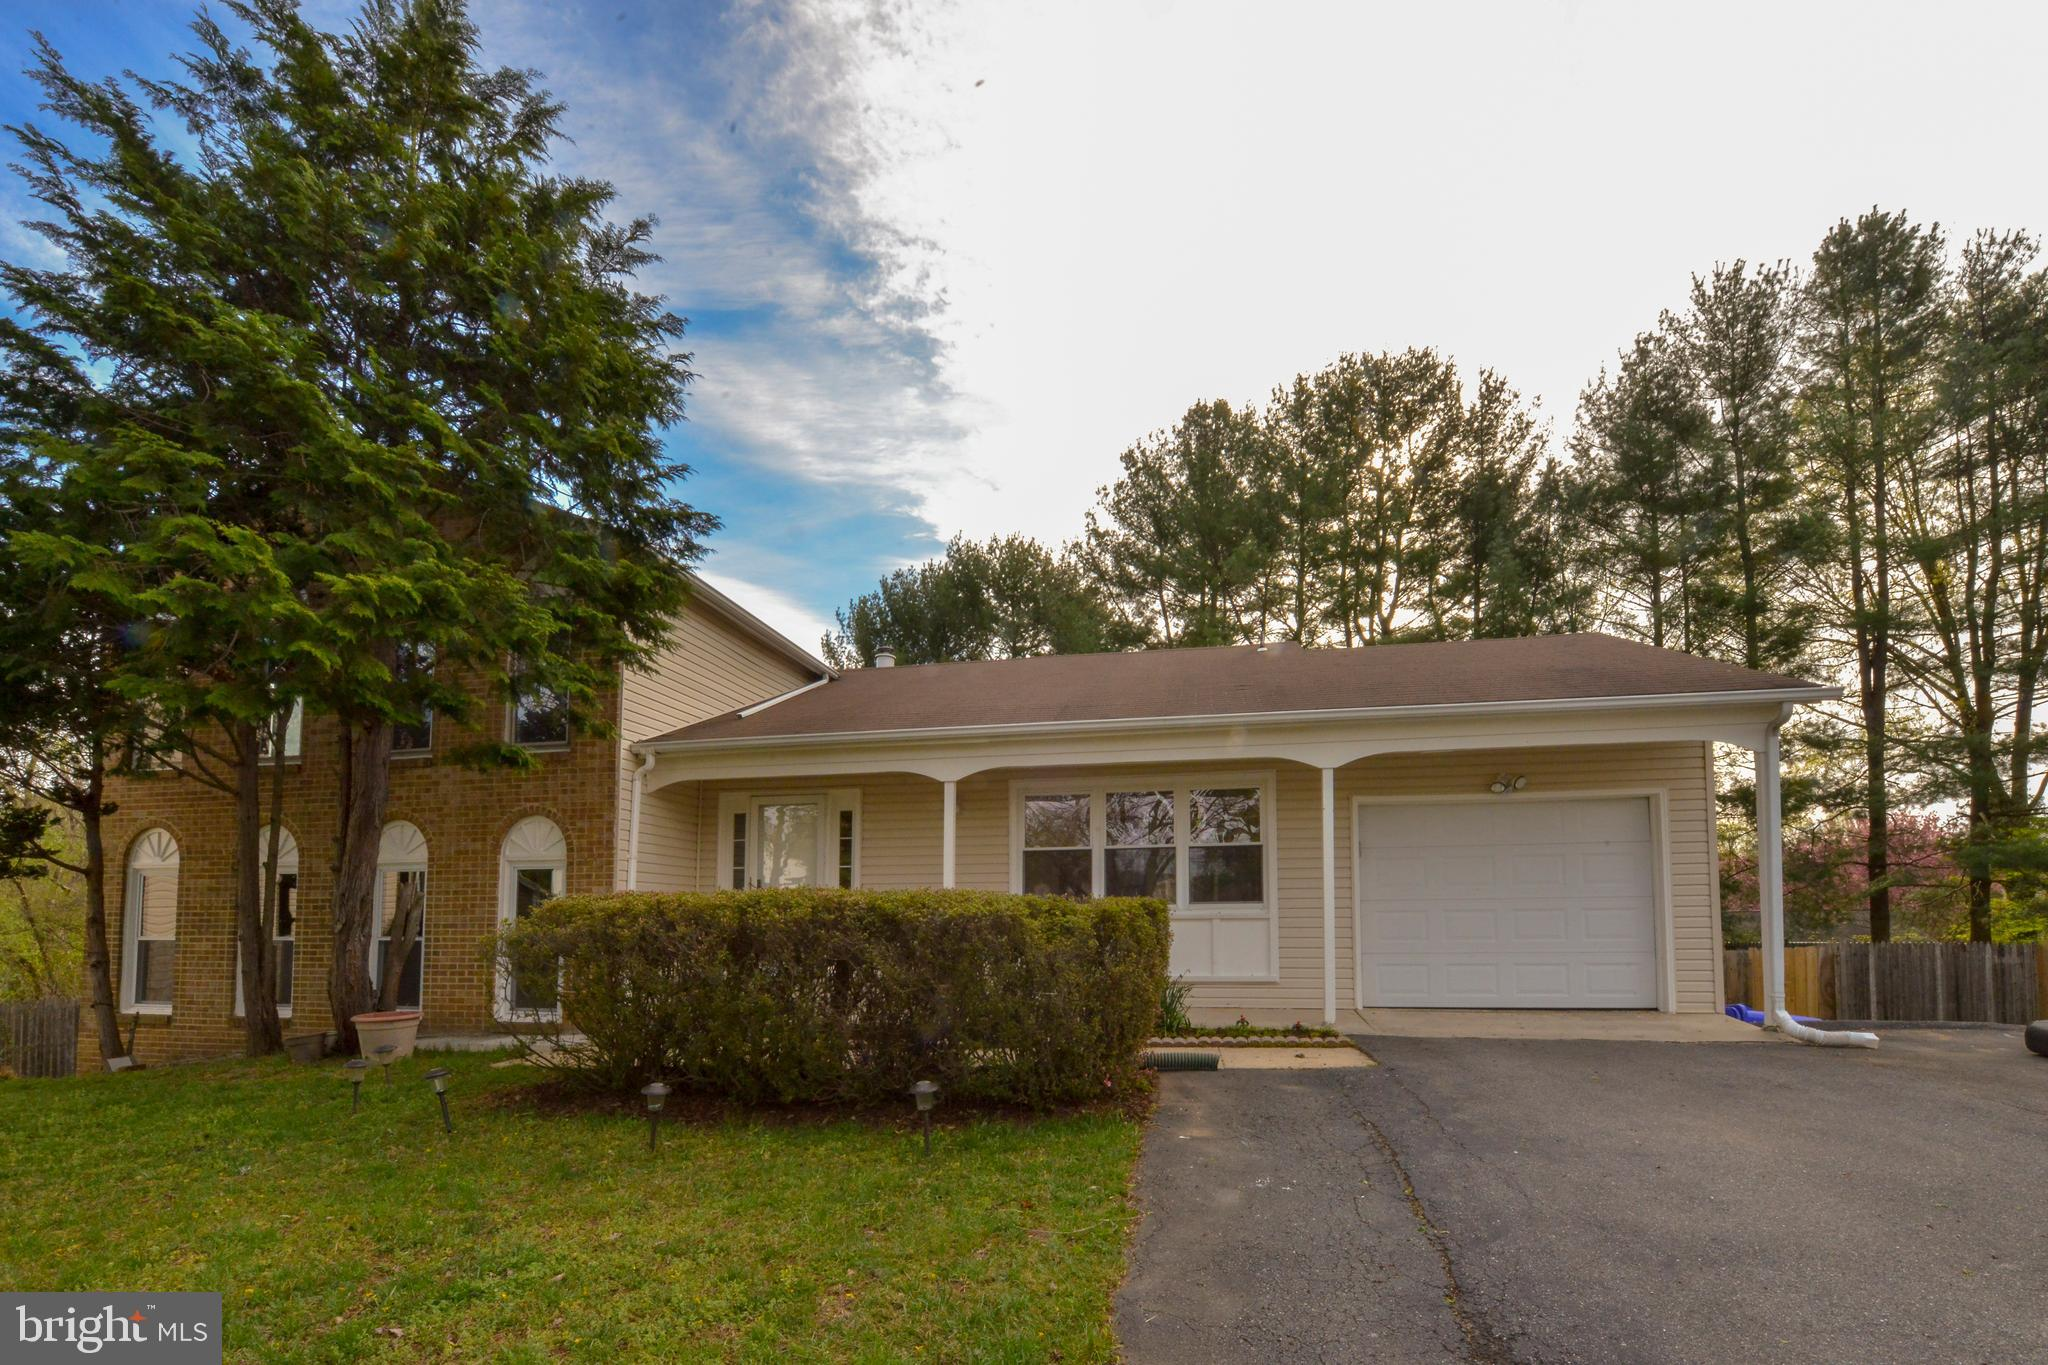 12001 APPLE KNOLL COURT, NORTH POTOMAC, MD 20878